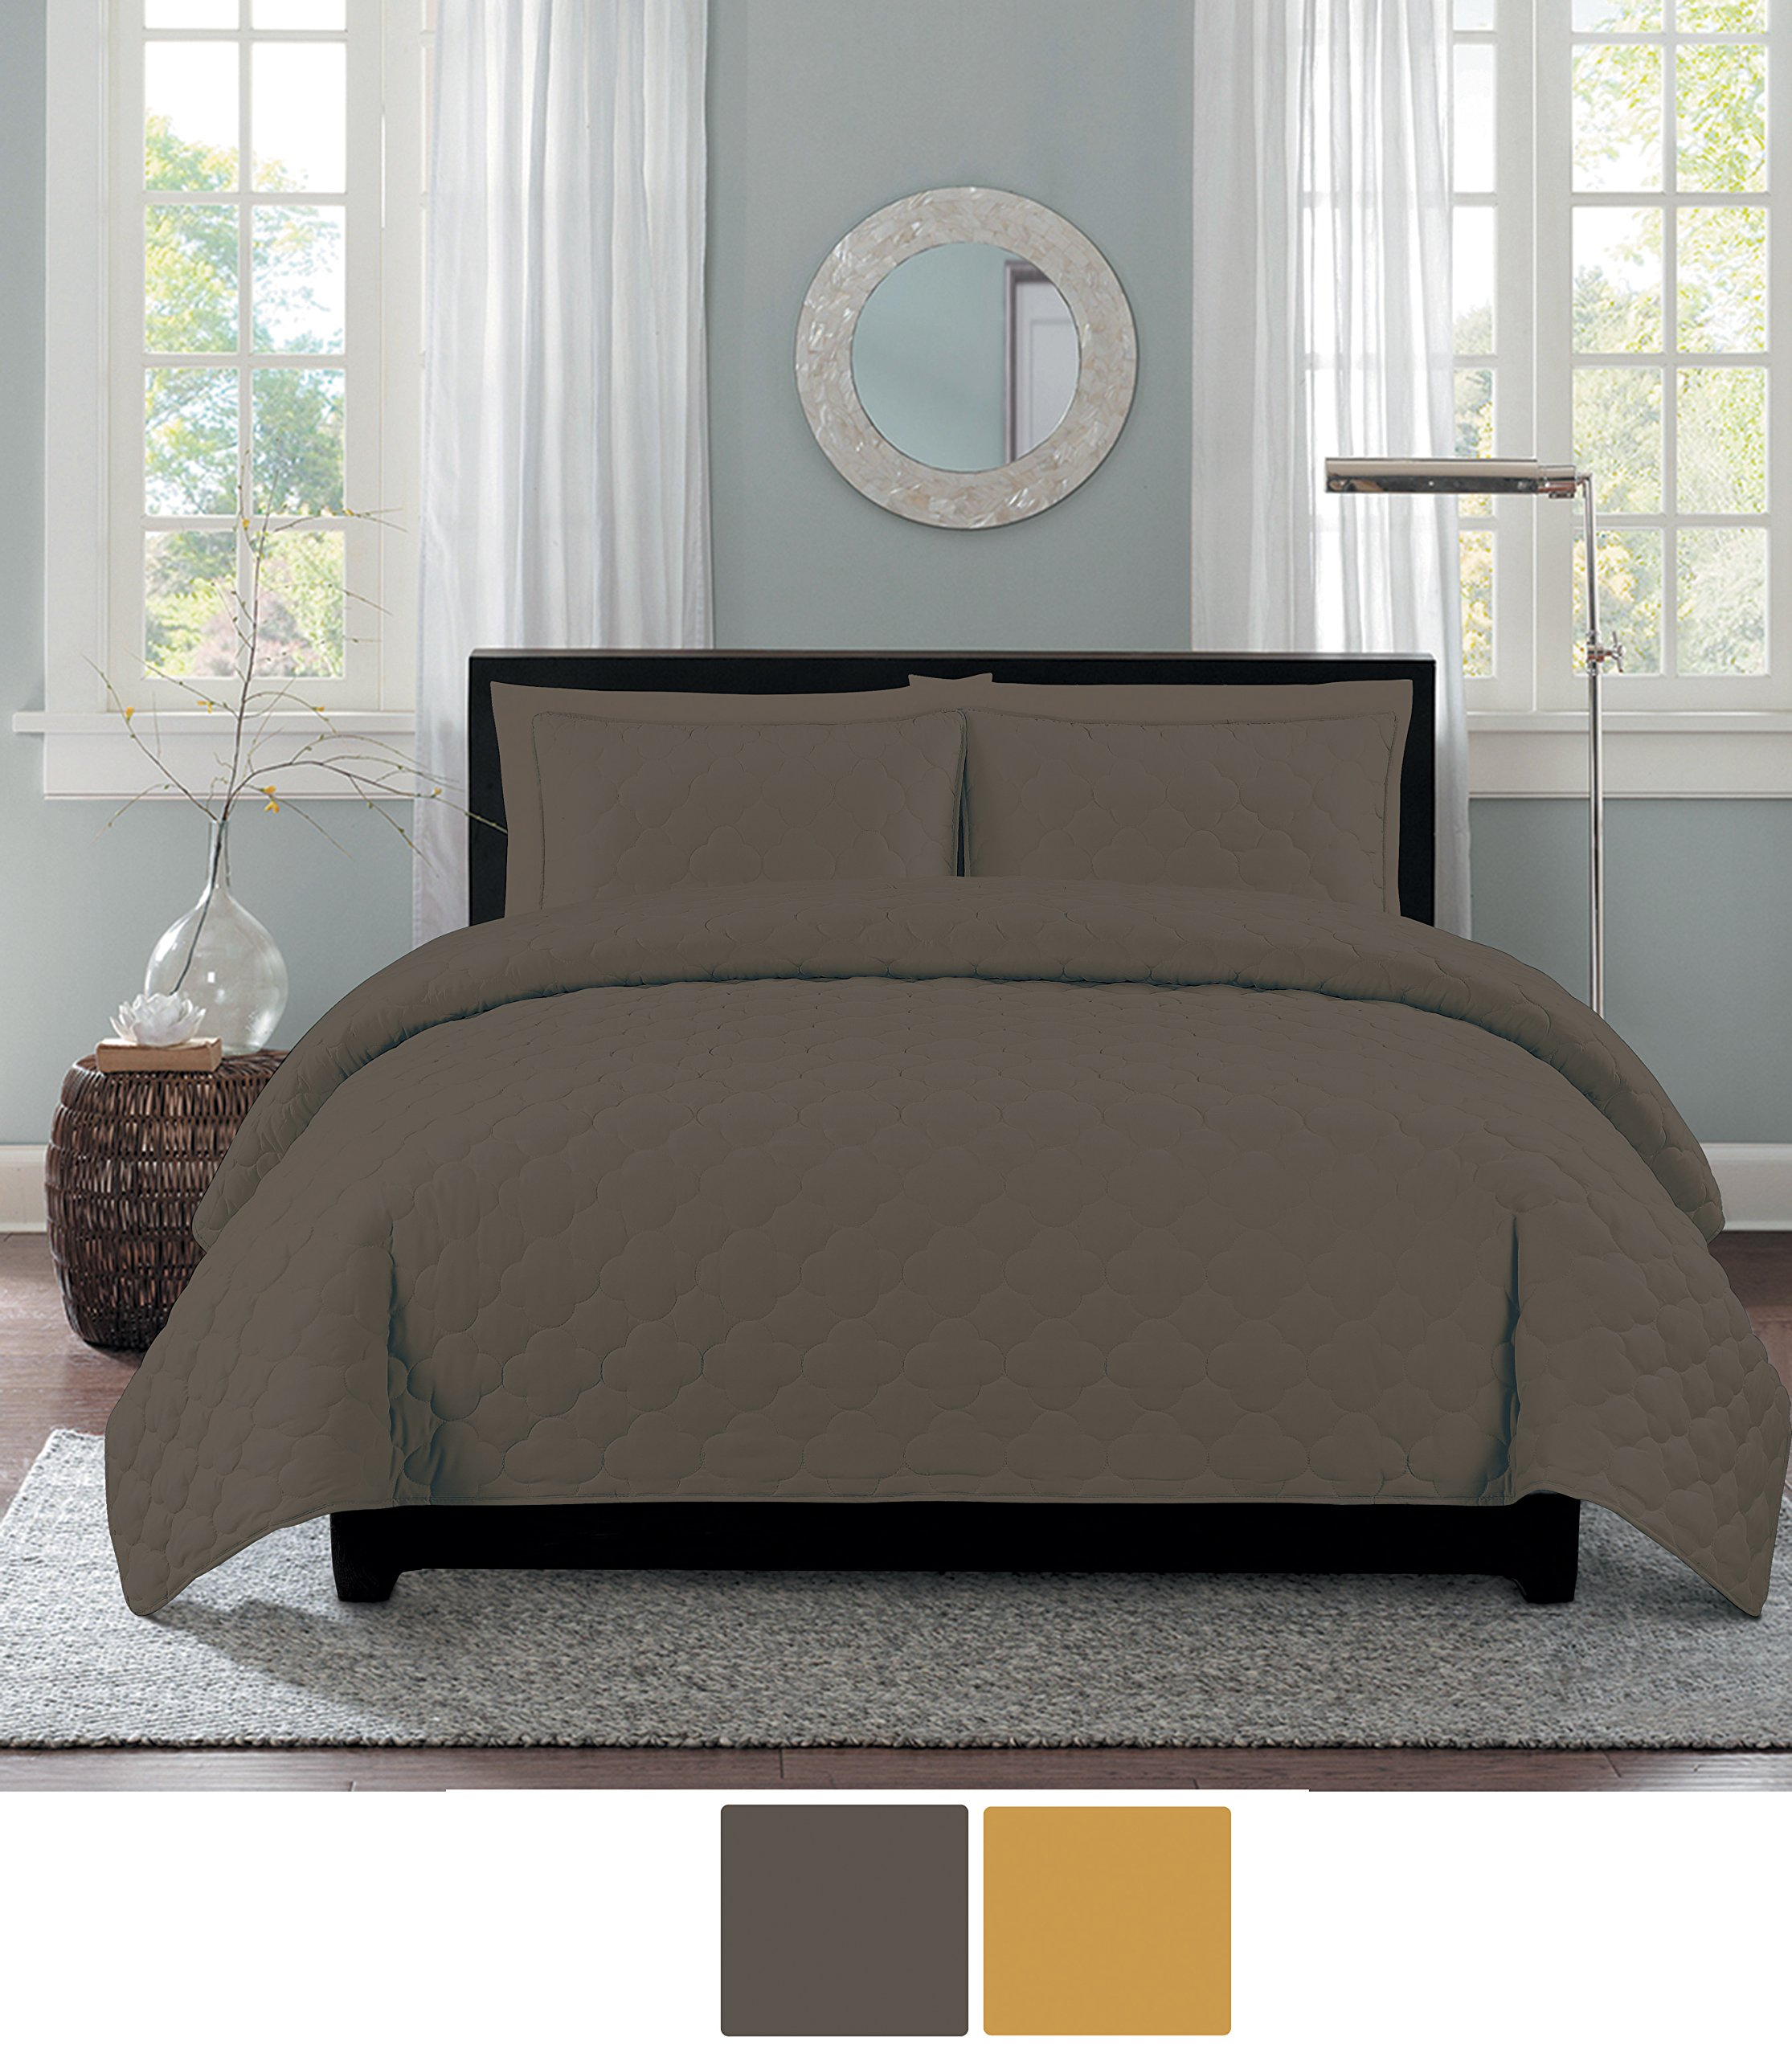 NC Home Fashions Catalina quilt set, Full/Queen, Charocal Gray